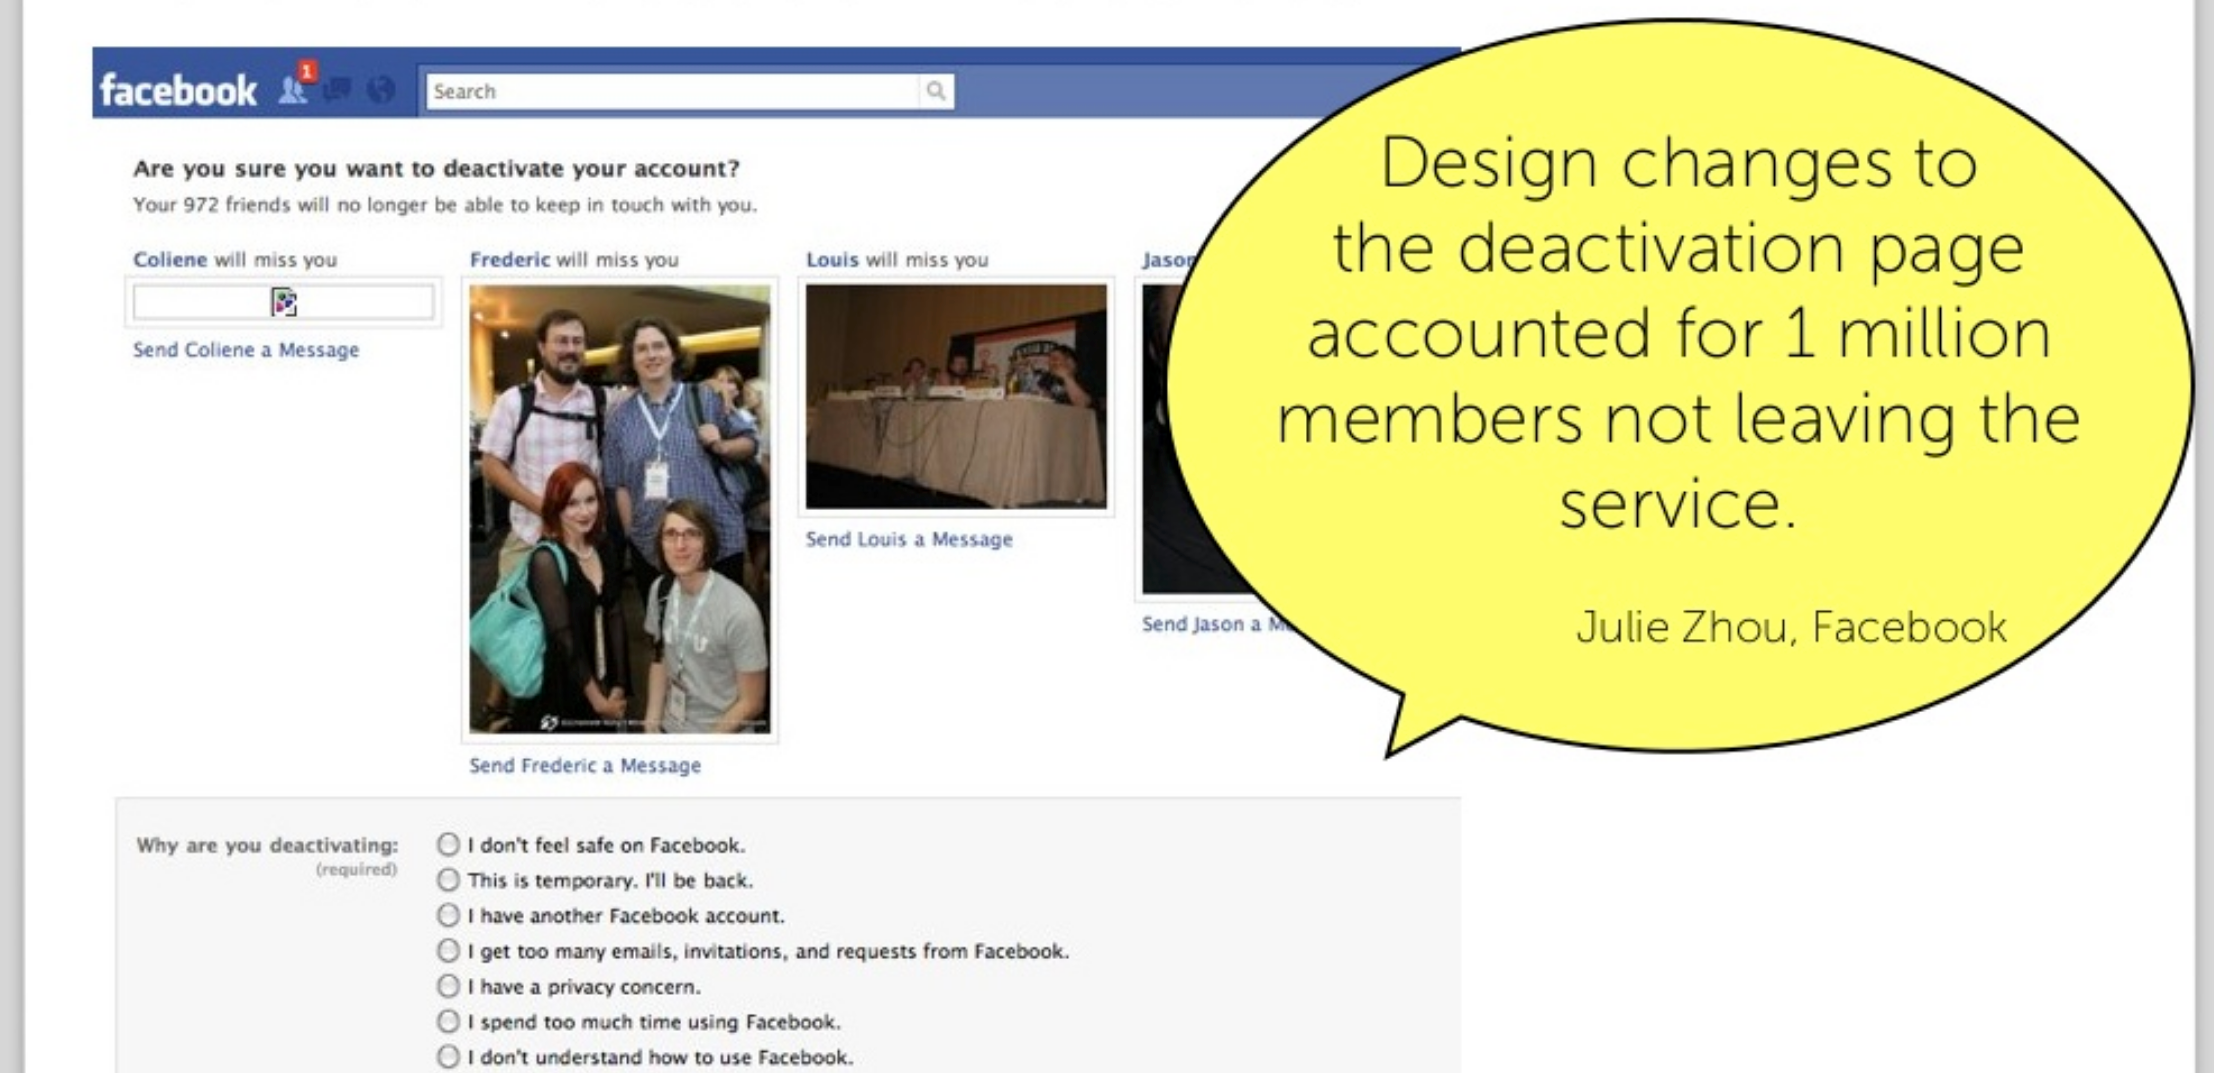 Endowment Effect tested at FaceBook